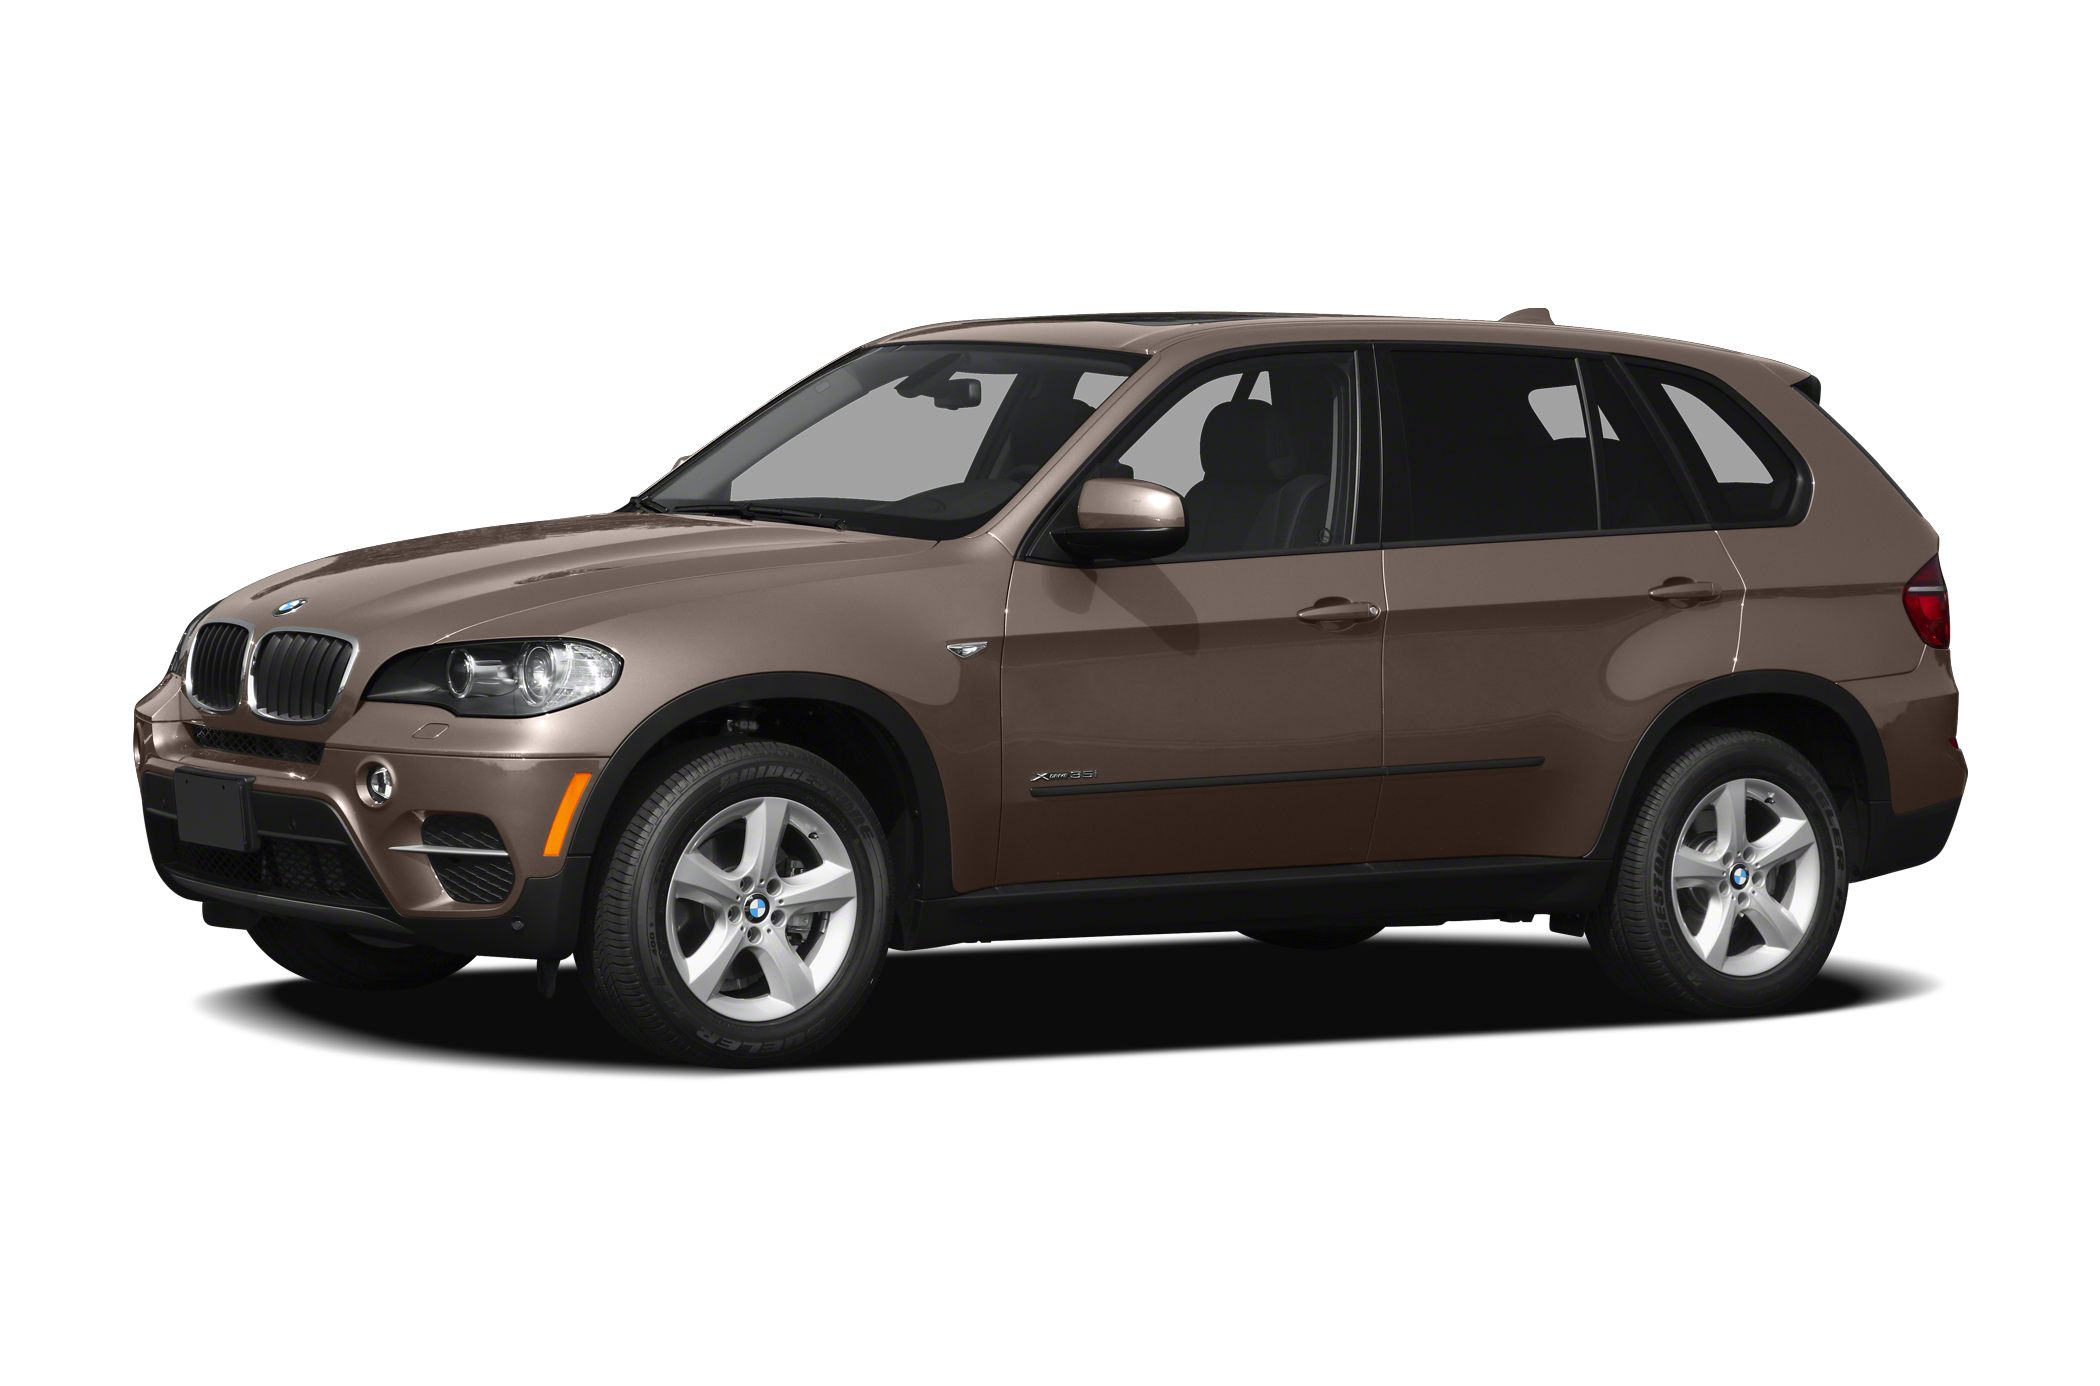 2012 BMW X5 XDrive35i SUV for sale in Silver Spring for $0 with 46,754 miles